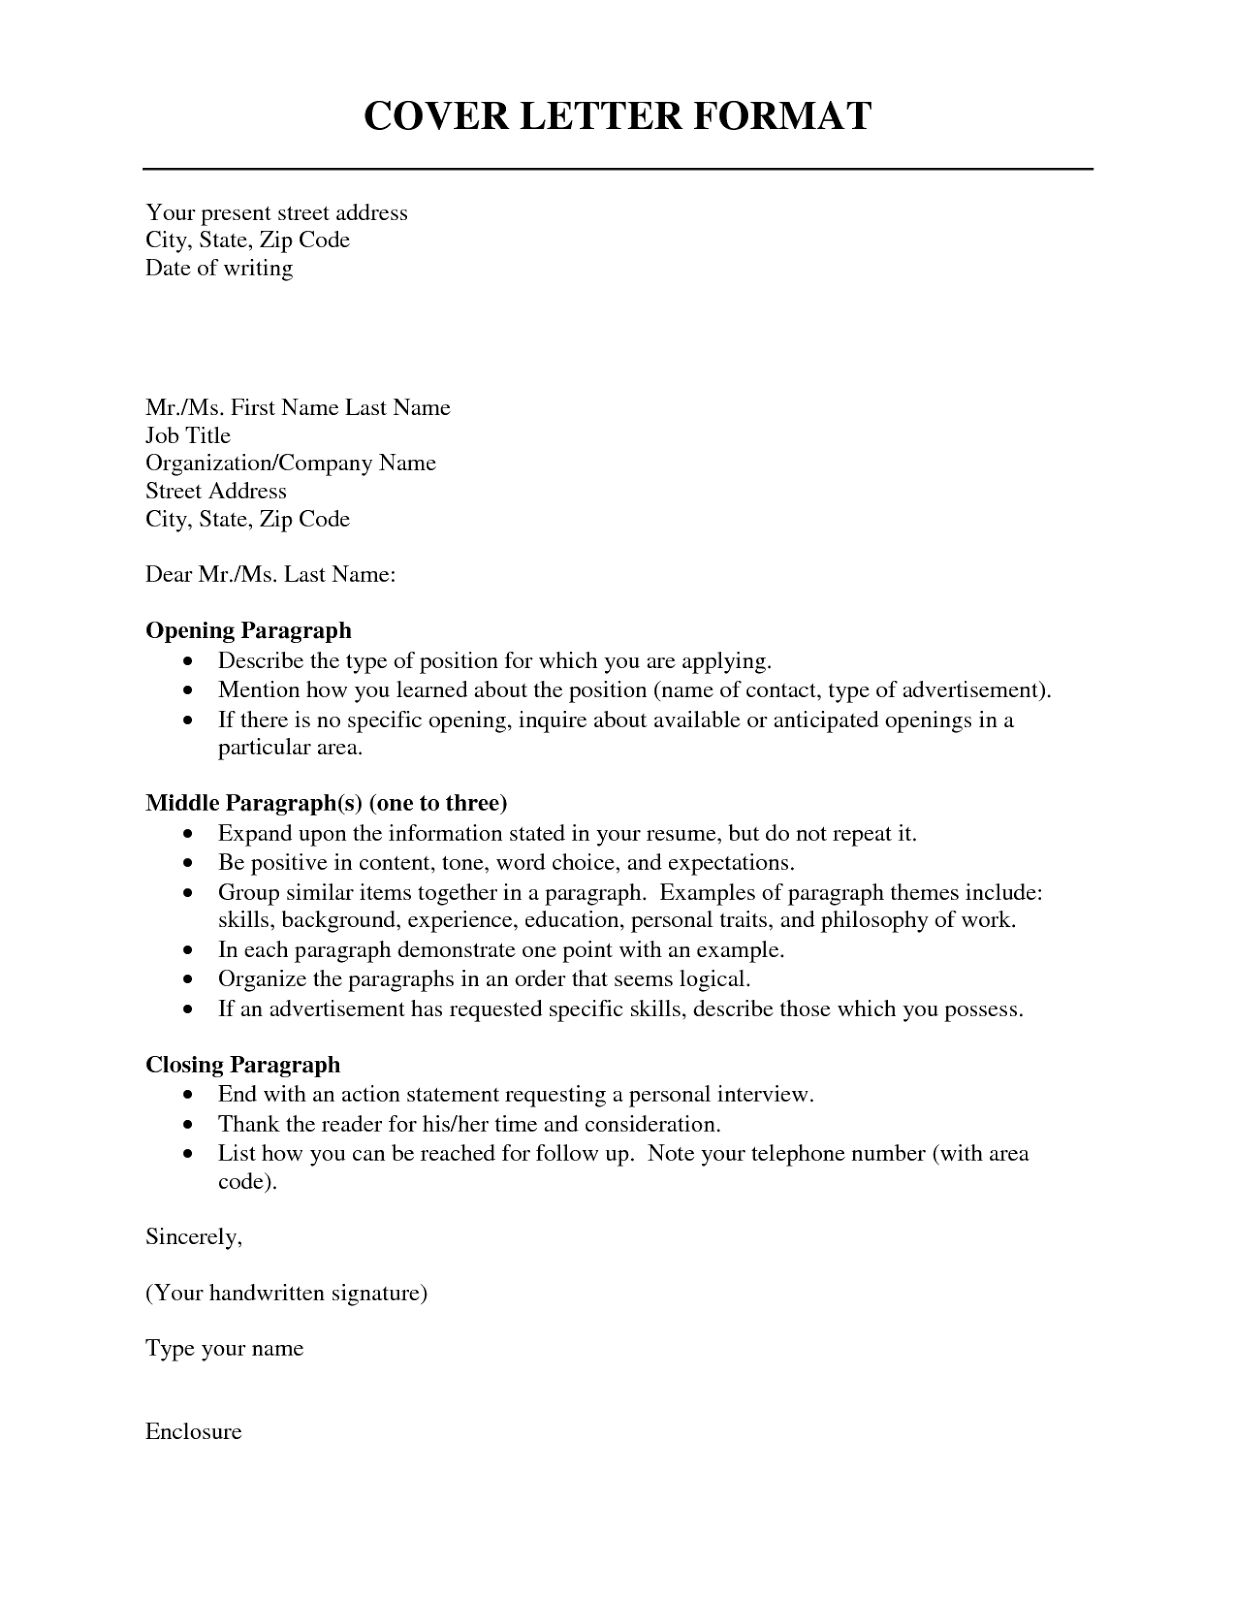 Cover Letter Resume Examples Covering Difference Between And With